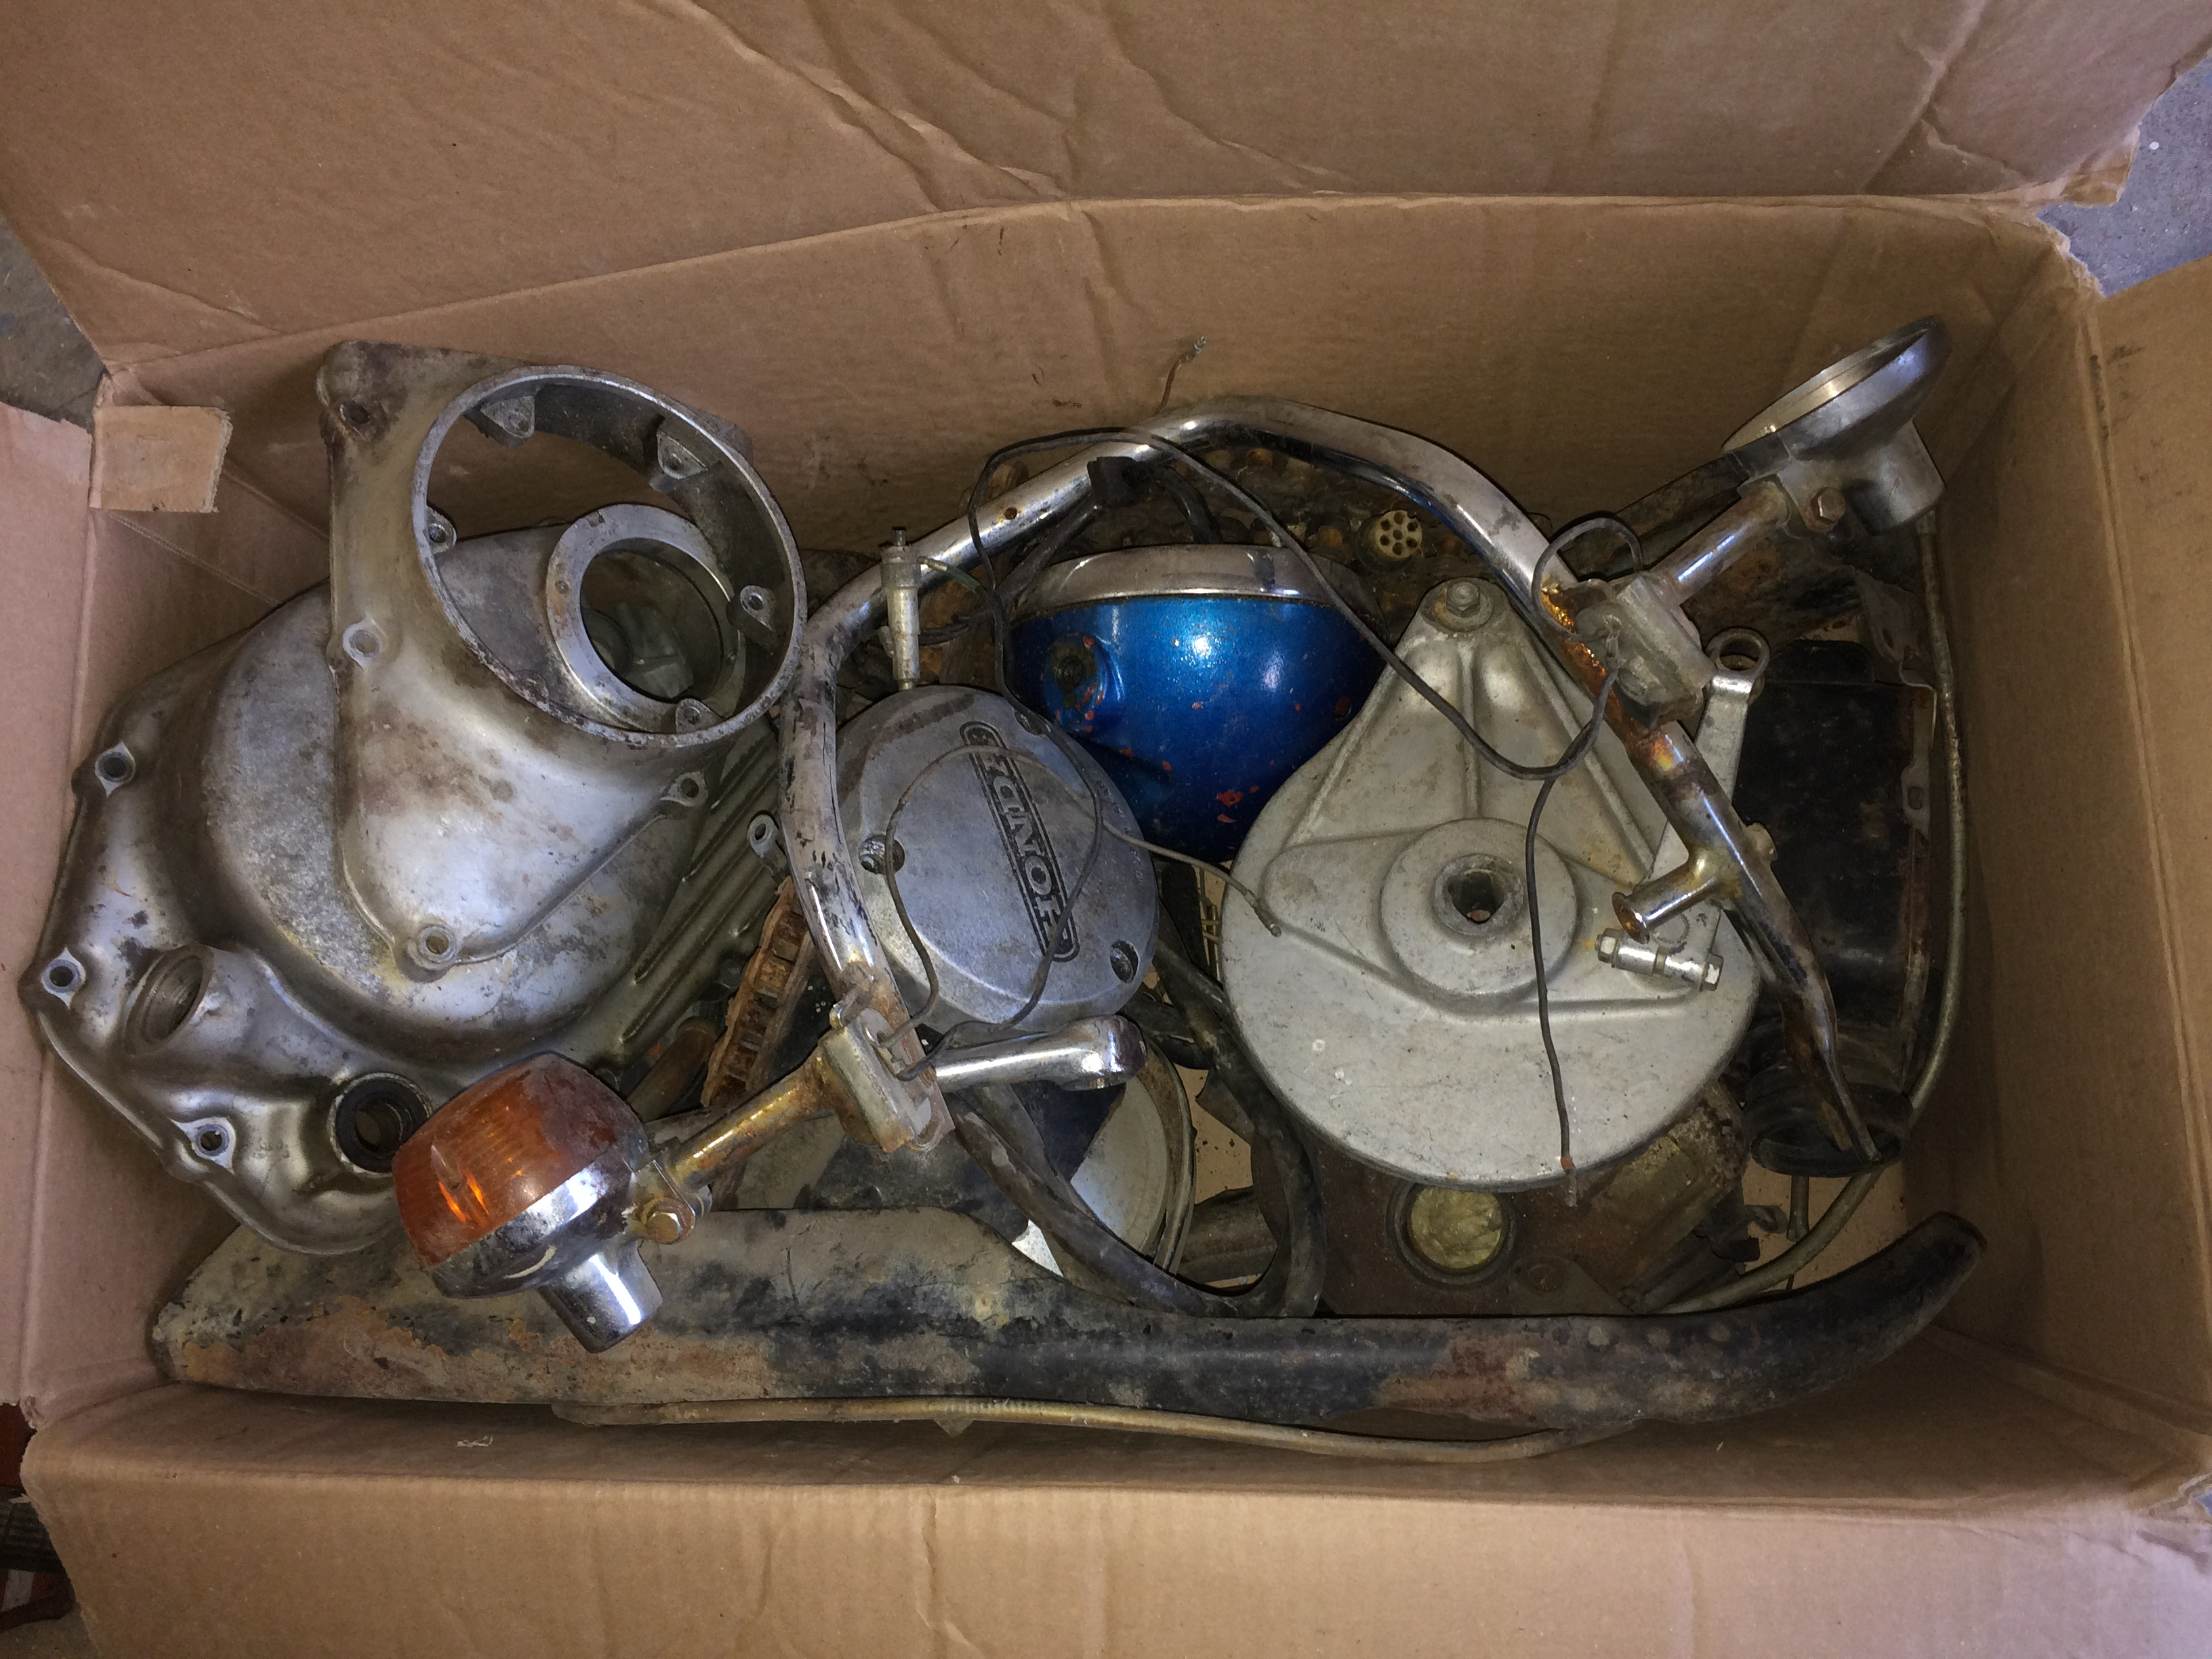 1972 CL 350 non-running; partially disassembled; for parts or restoration-img_1222.jpg